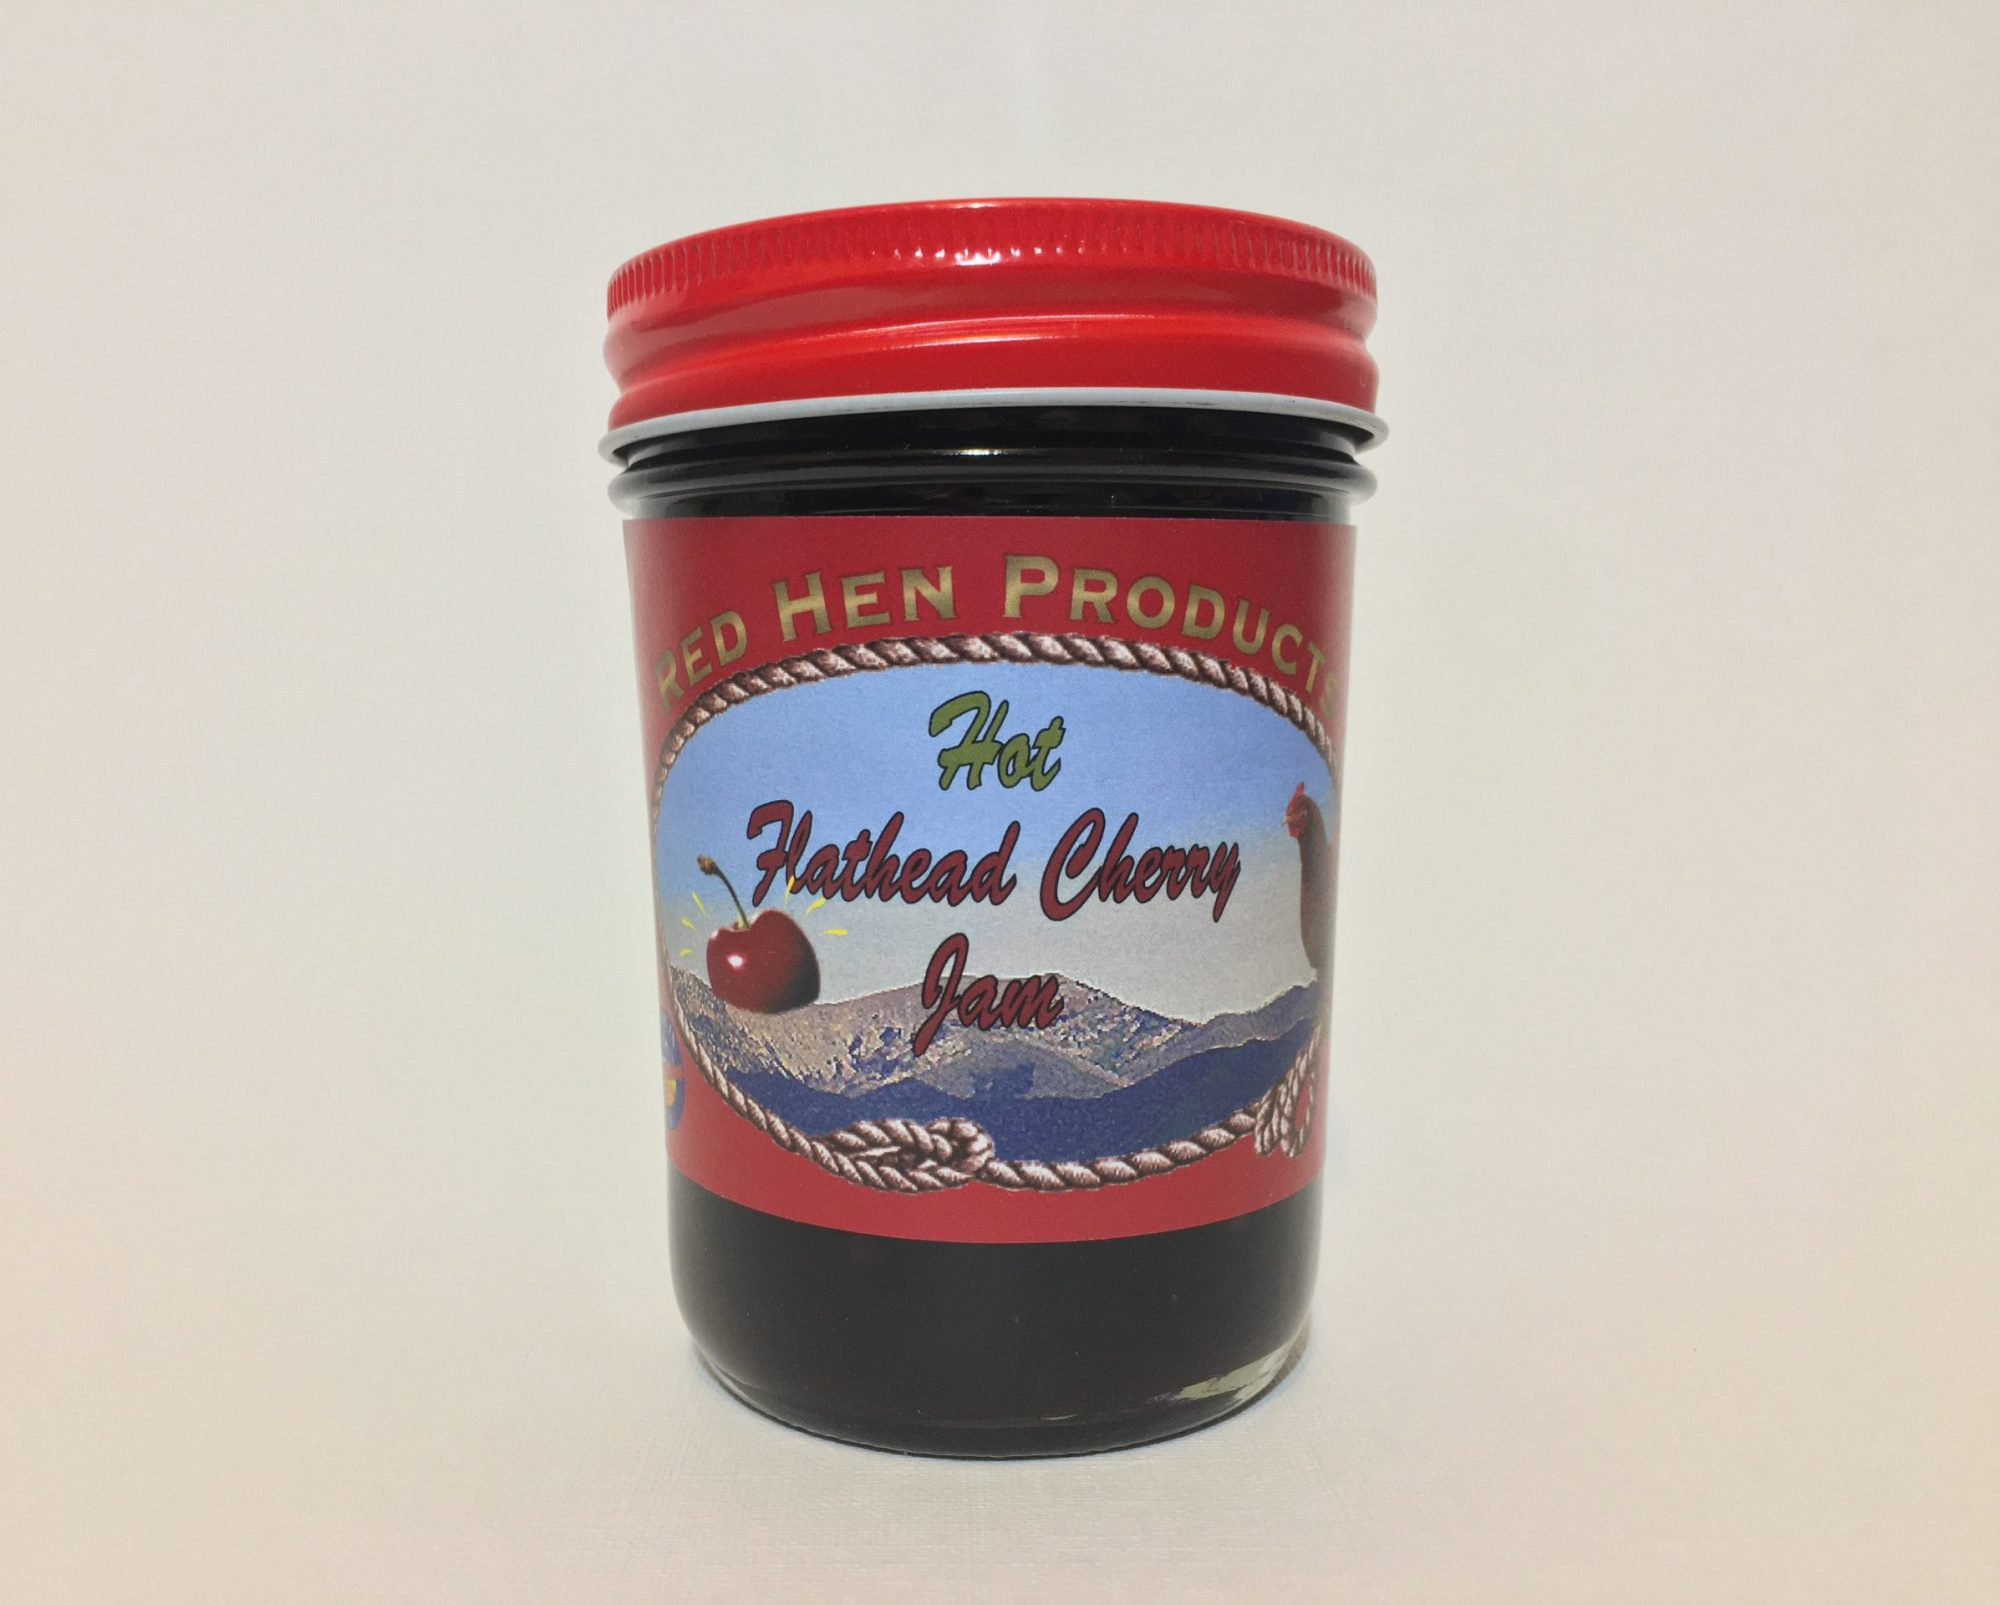 Hot Flathead Cherry Jam